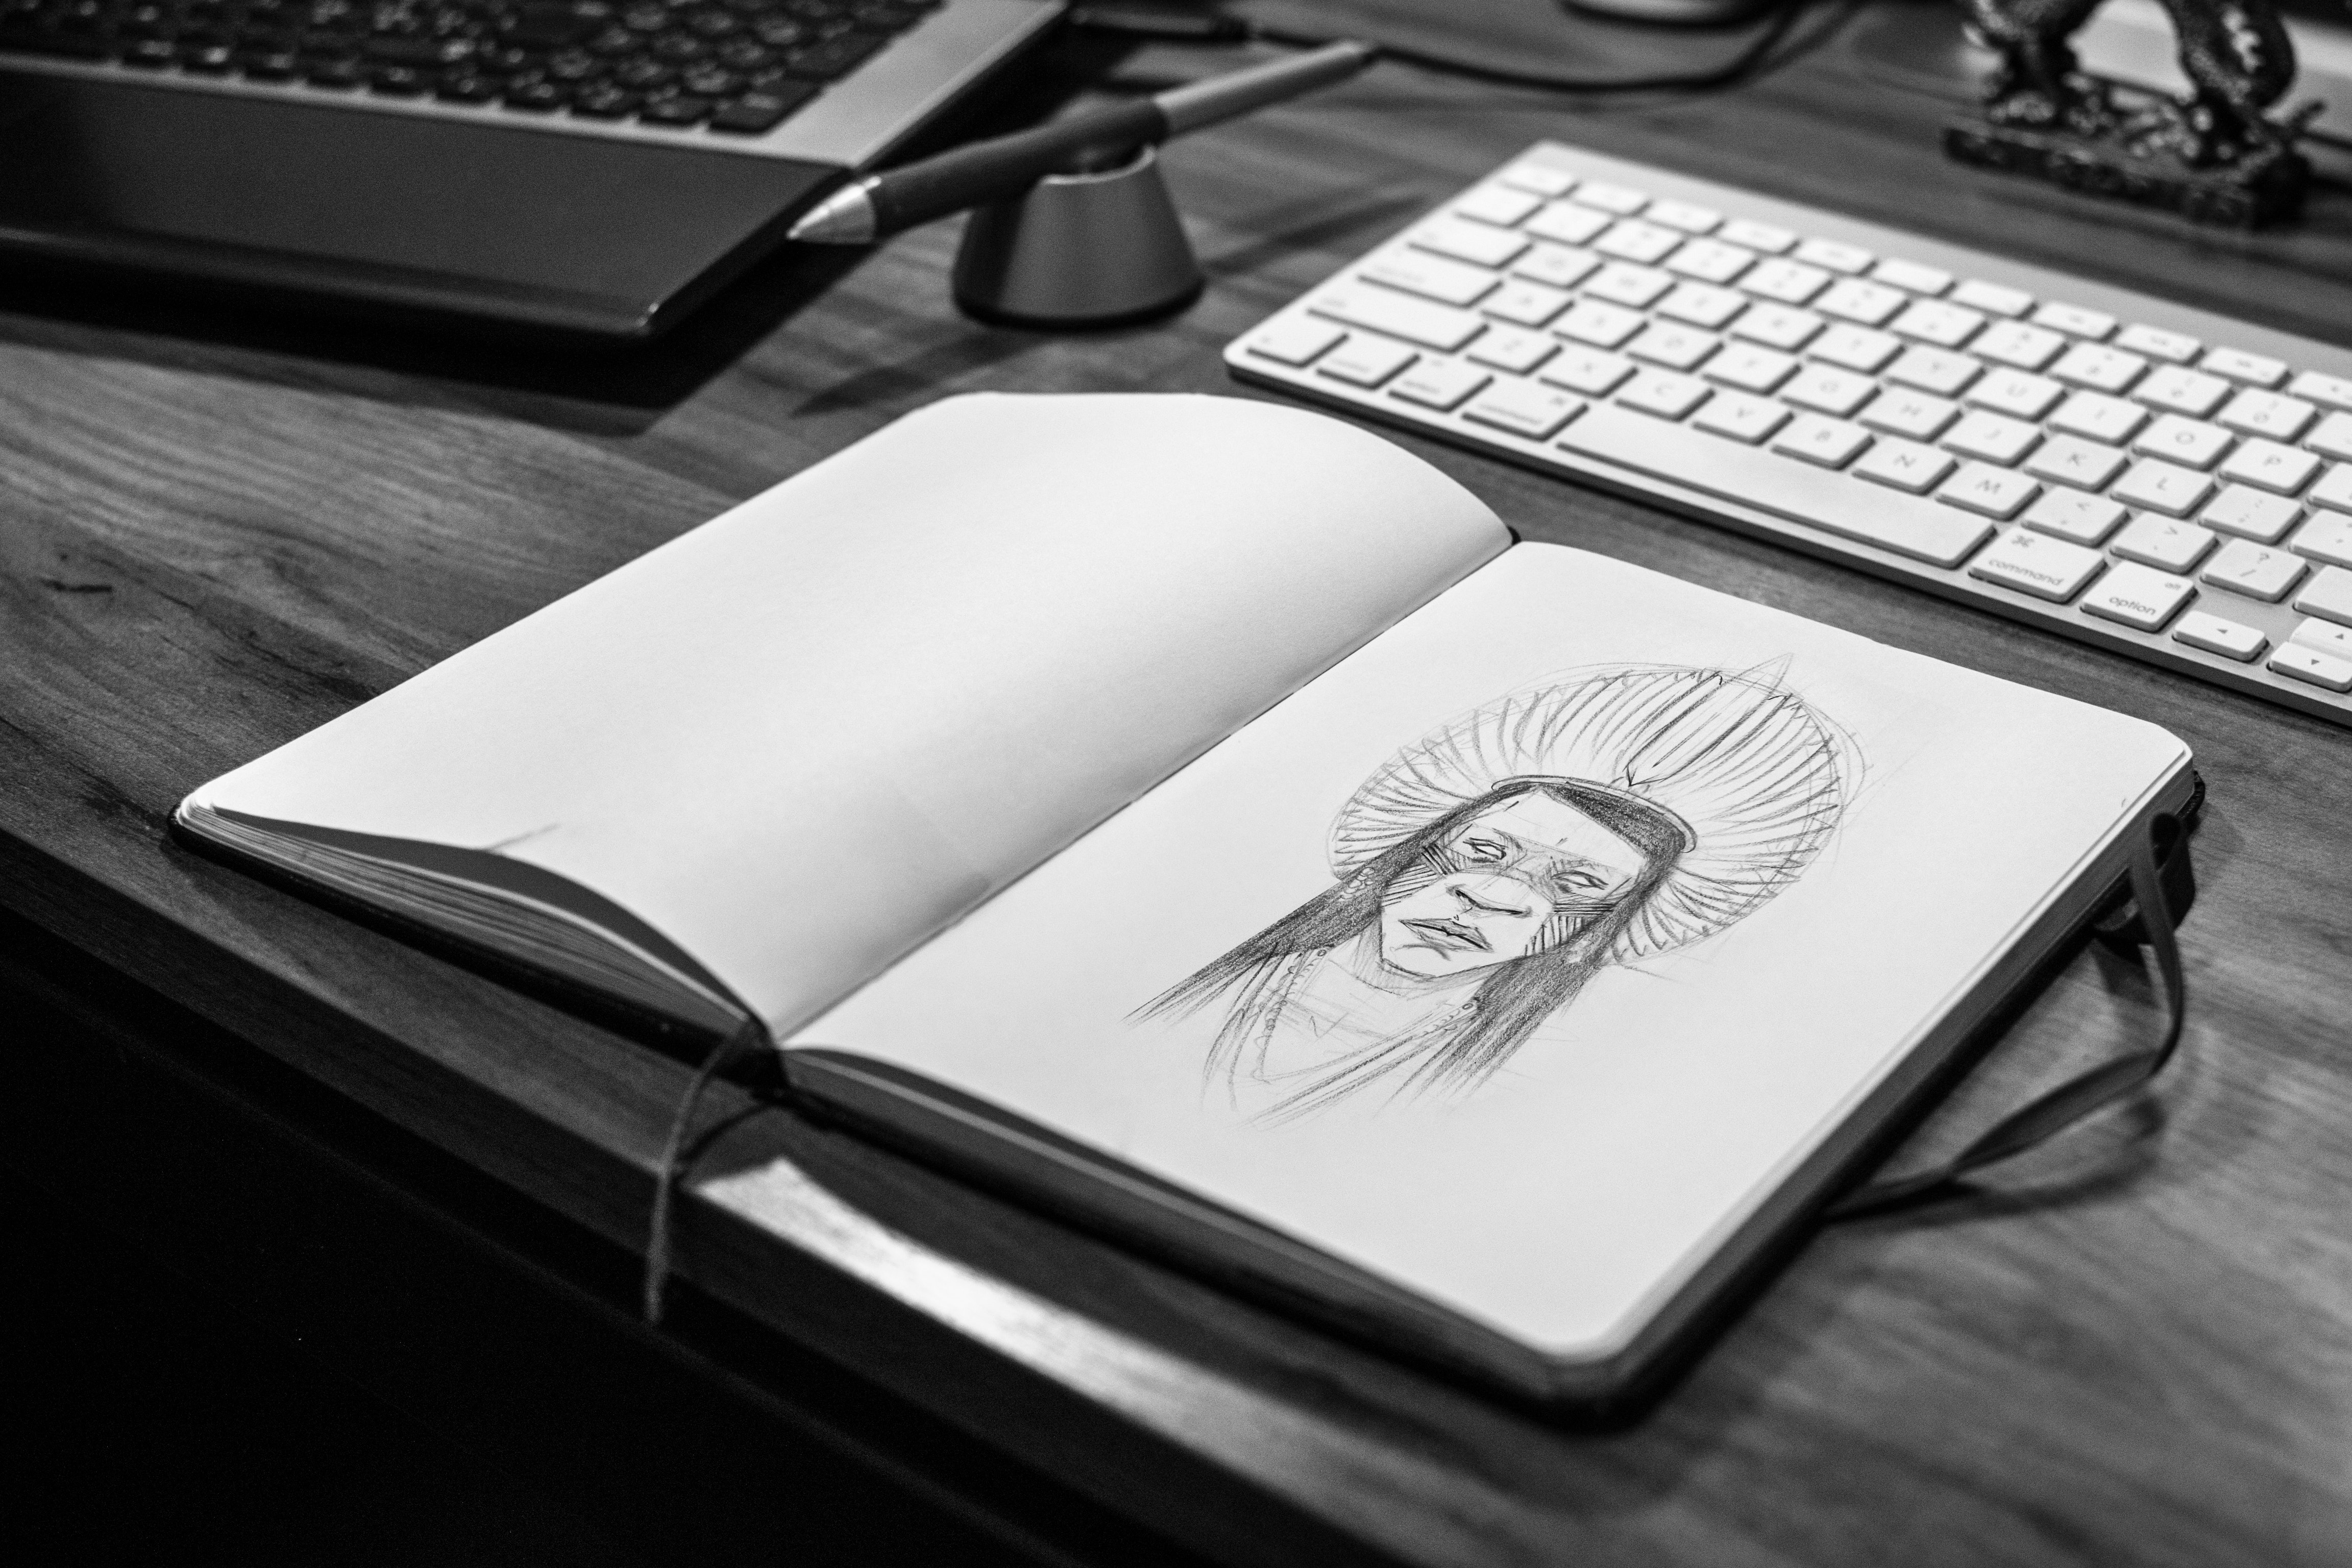 Sketch Book on Gray Wooden Surface, Paper, Native, Laptop, Keyboard, HQ Photo